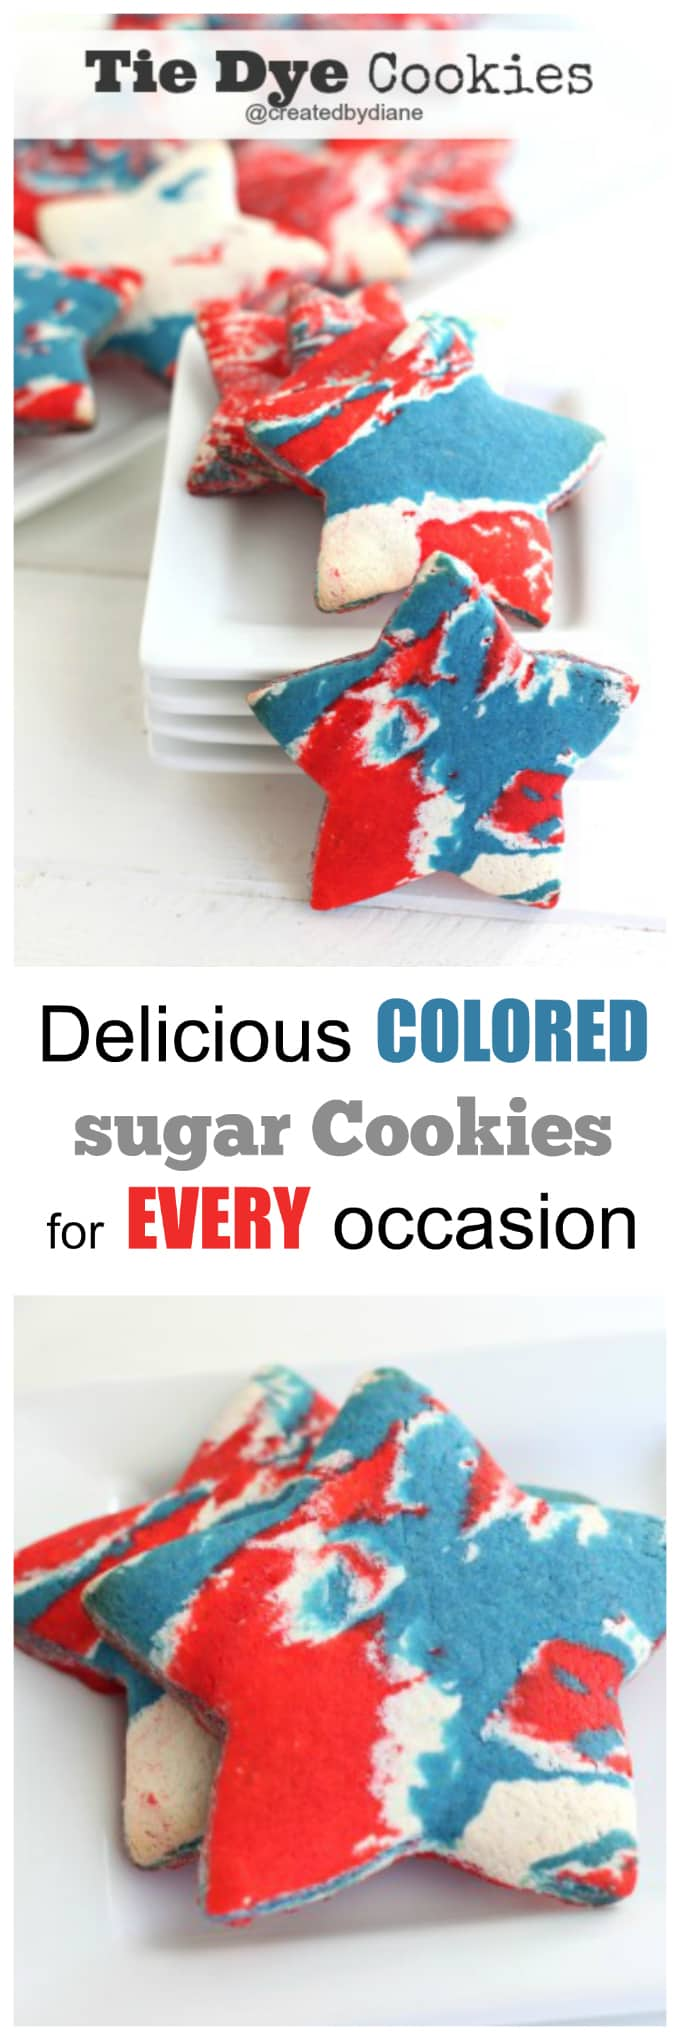 colored sugar cookie dough makes PRETTY tie dye cookies for holidays, parties and celebrating July4th